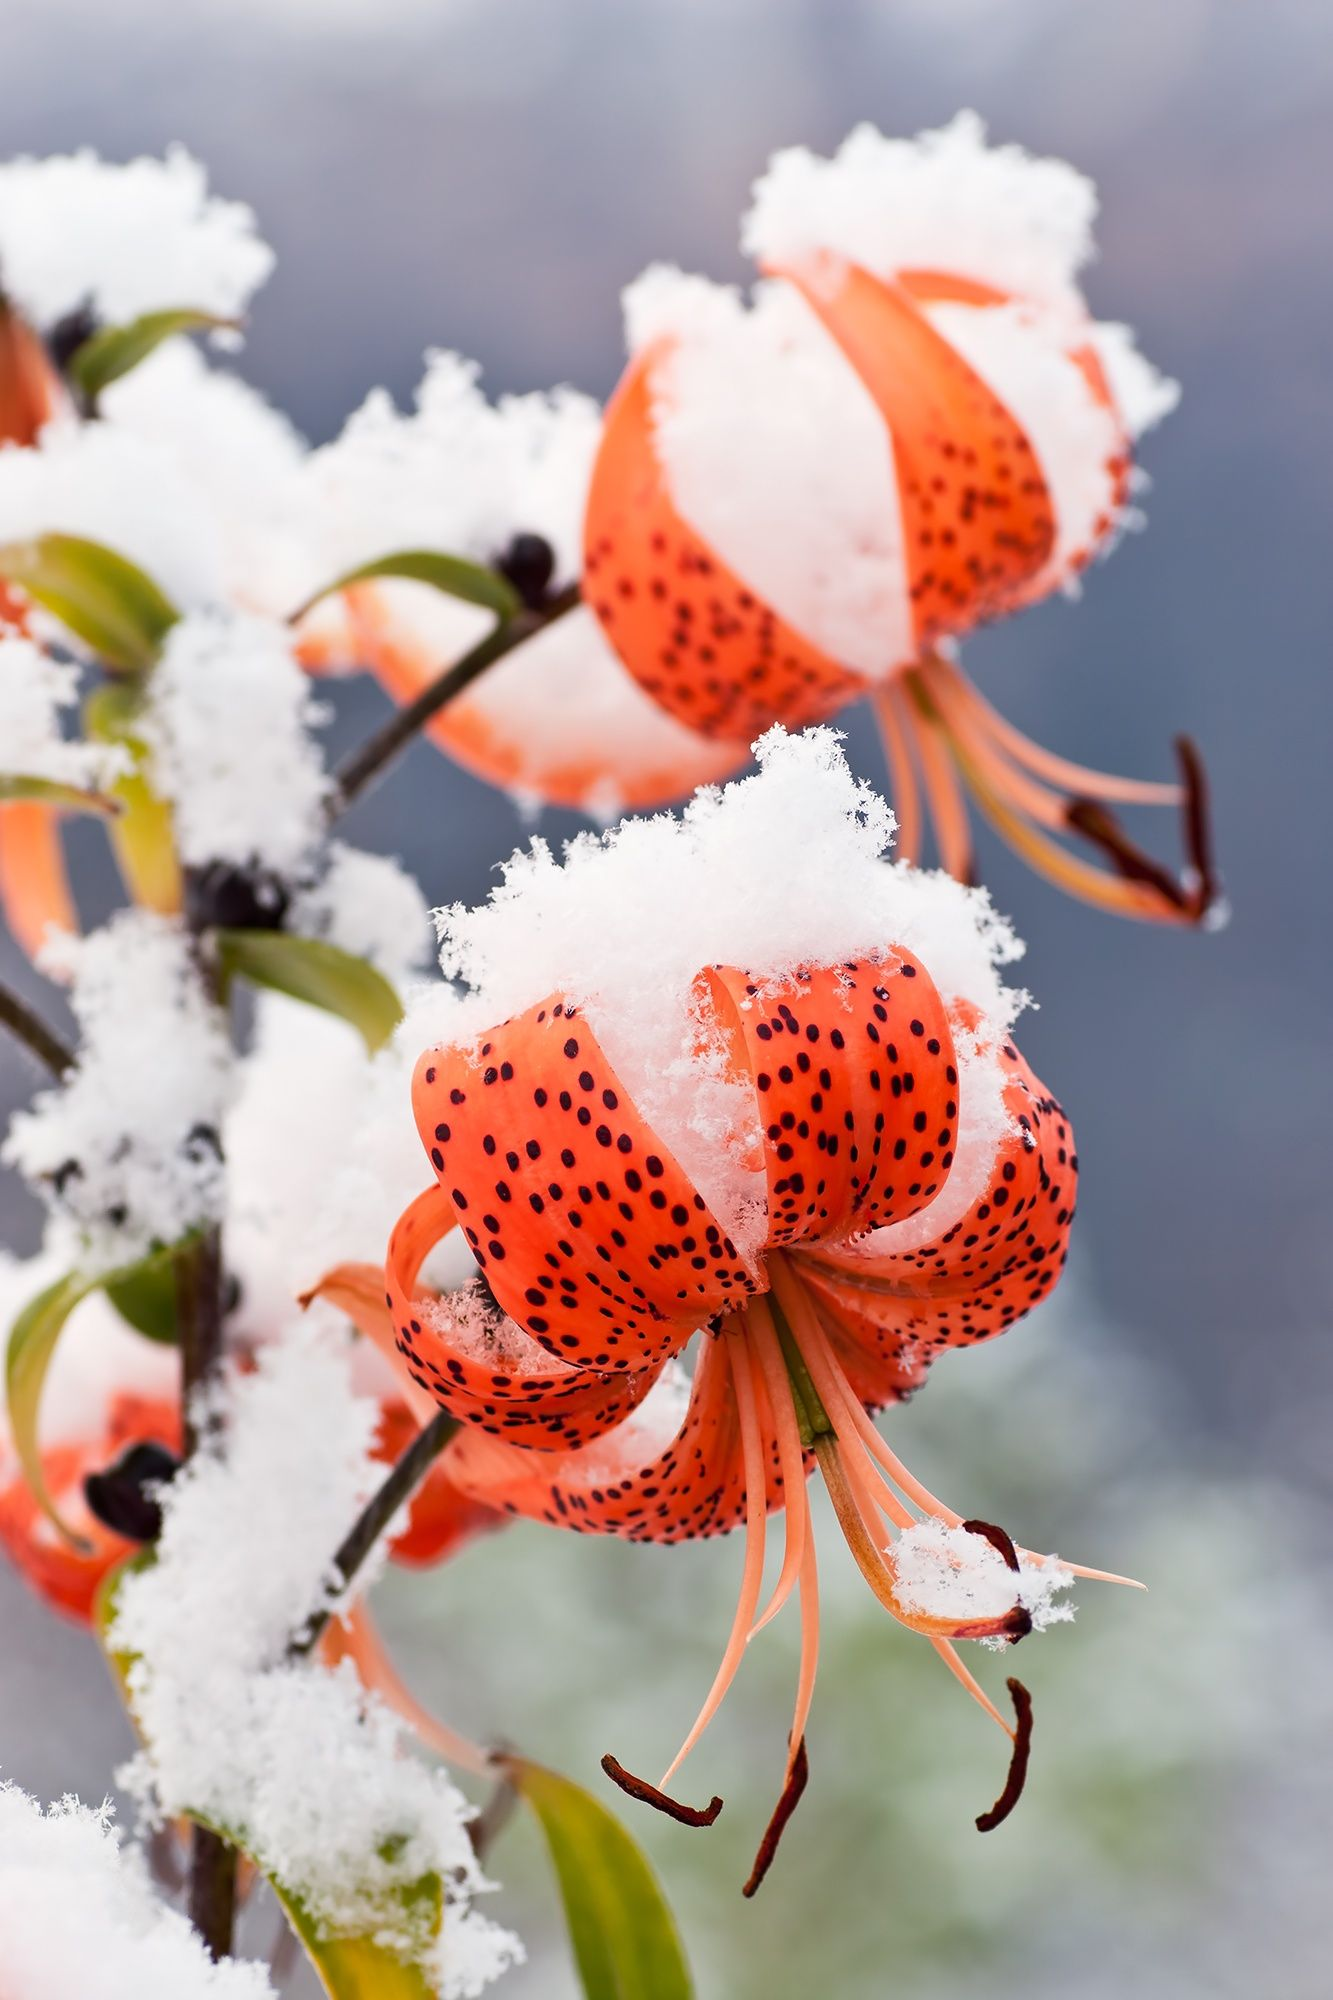 Early snow on late blooming tiger lillies, in South Central